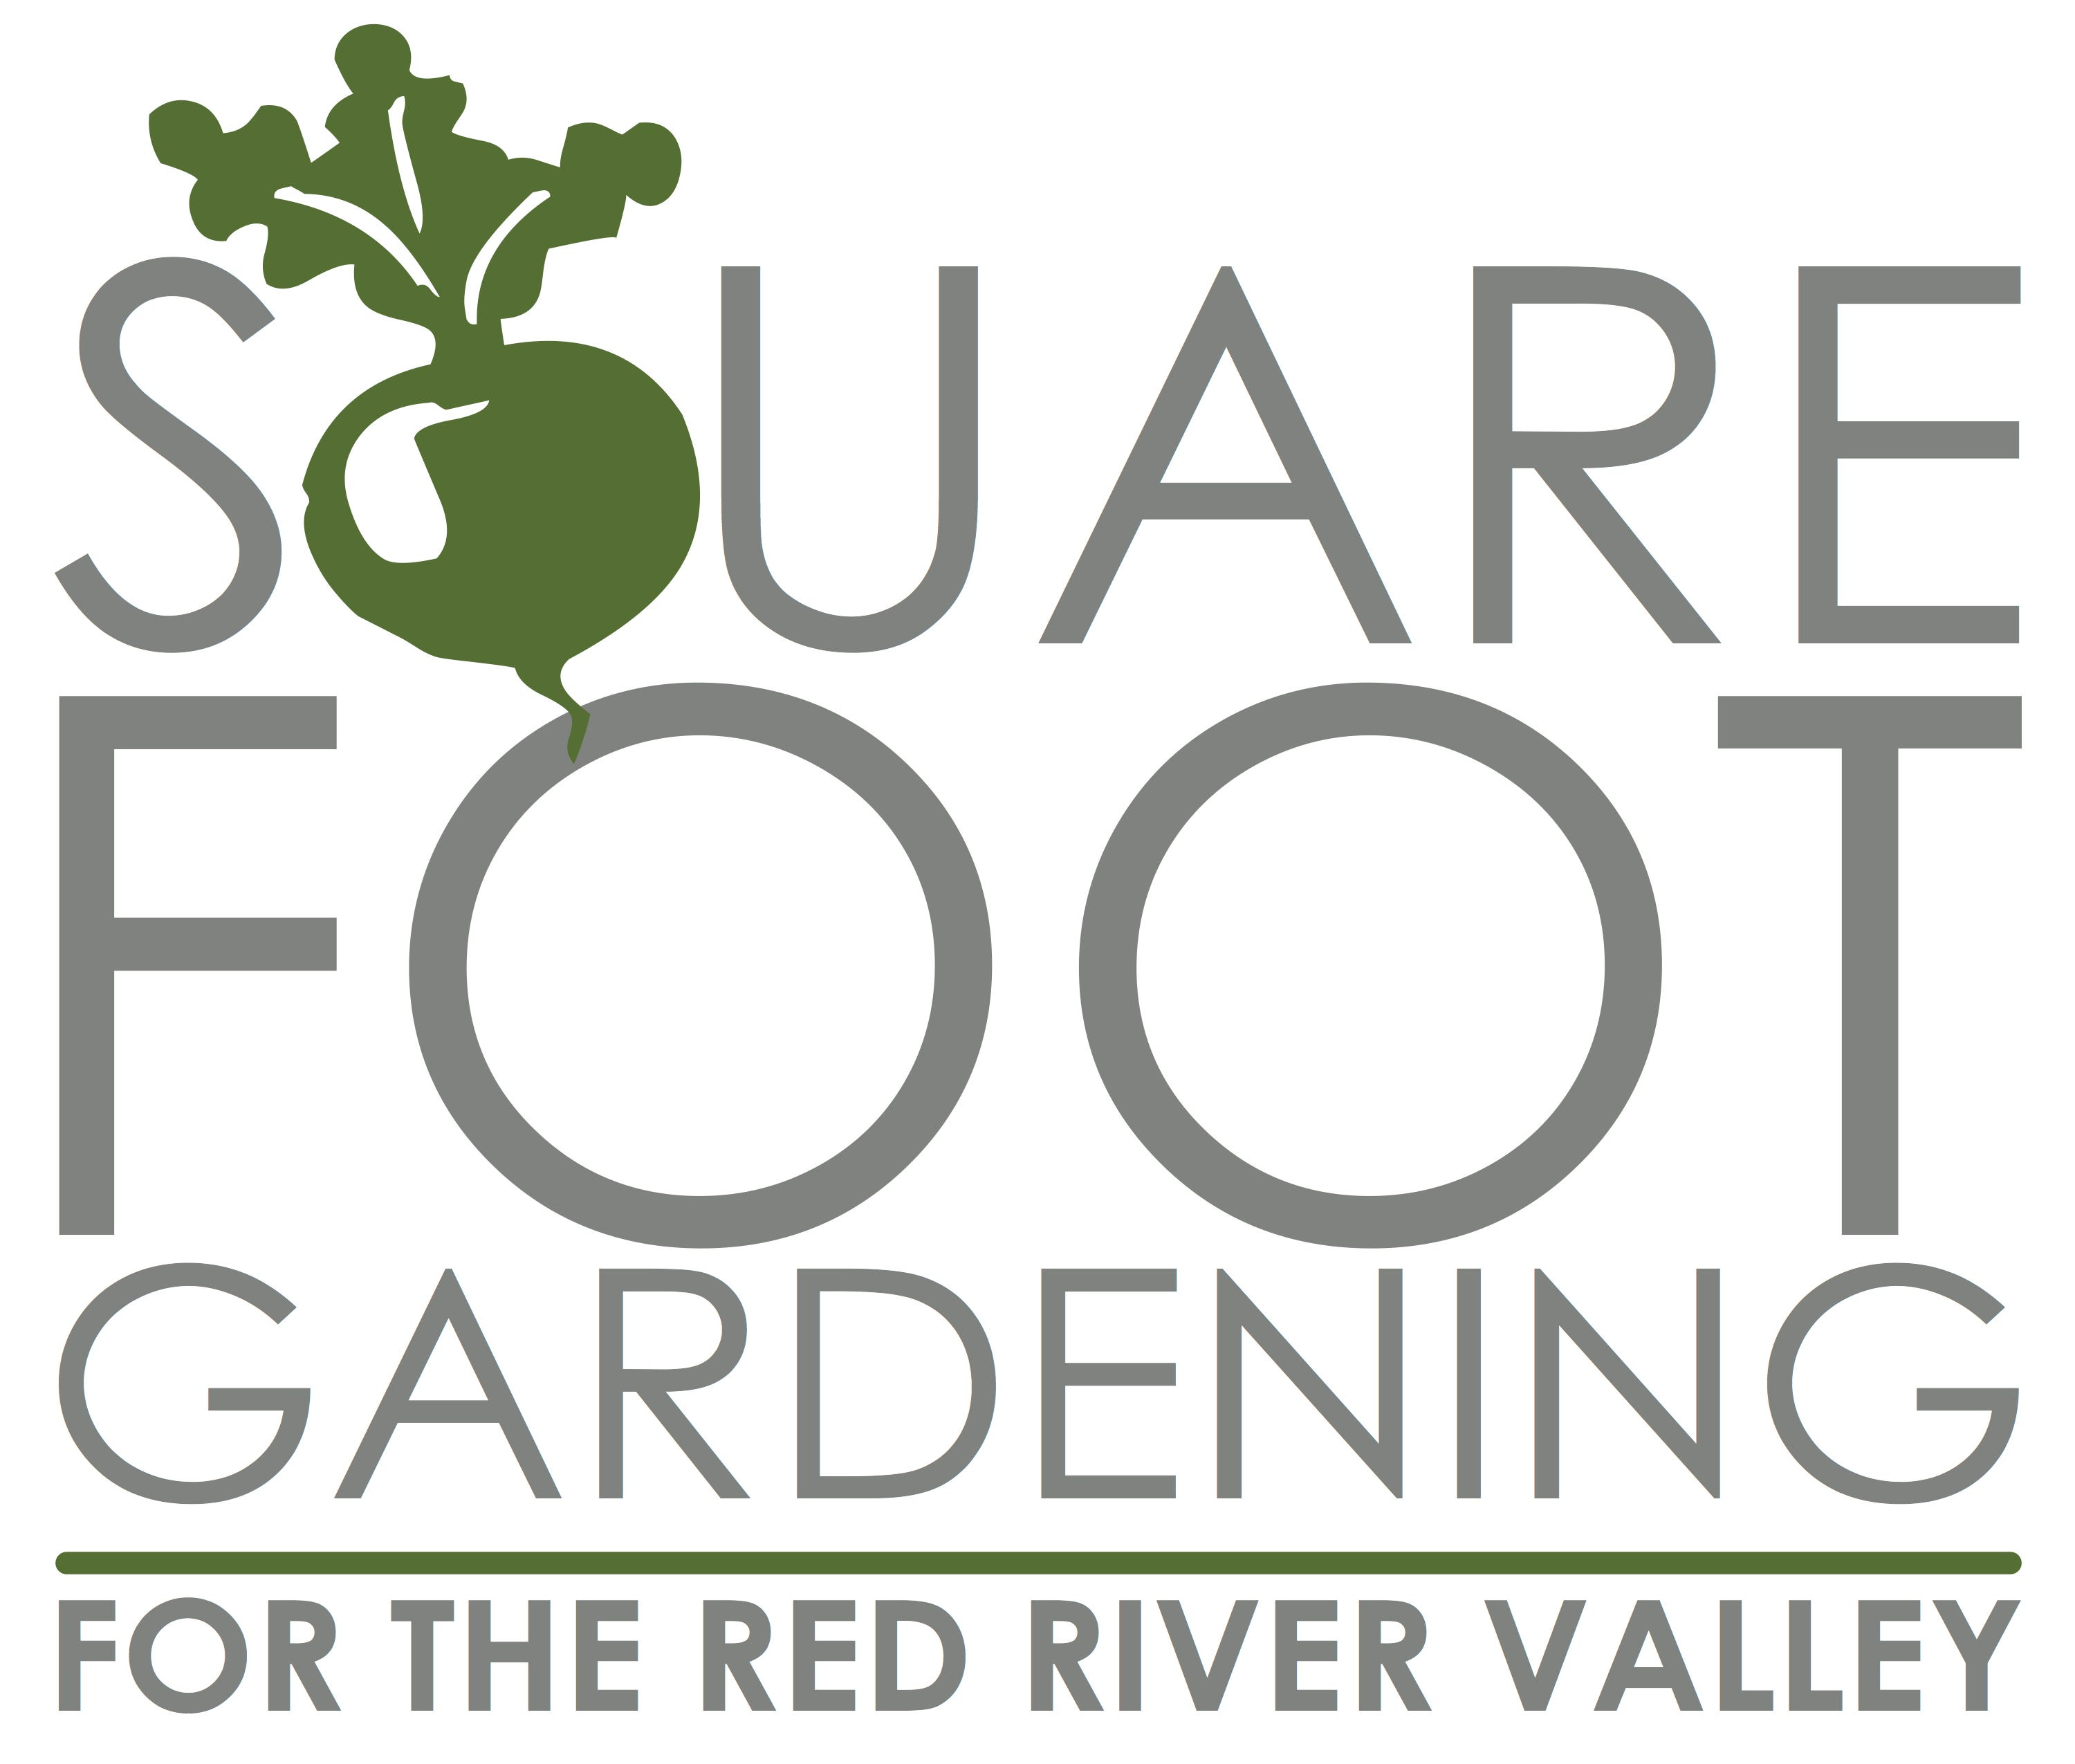 Square Foot Gardening for the Red River Valley LLC